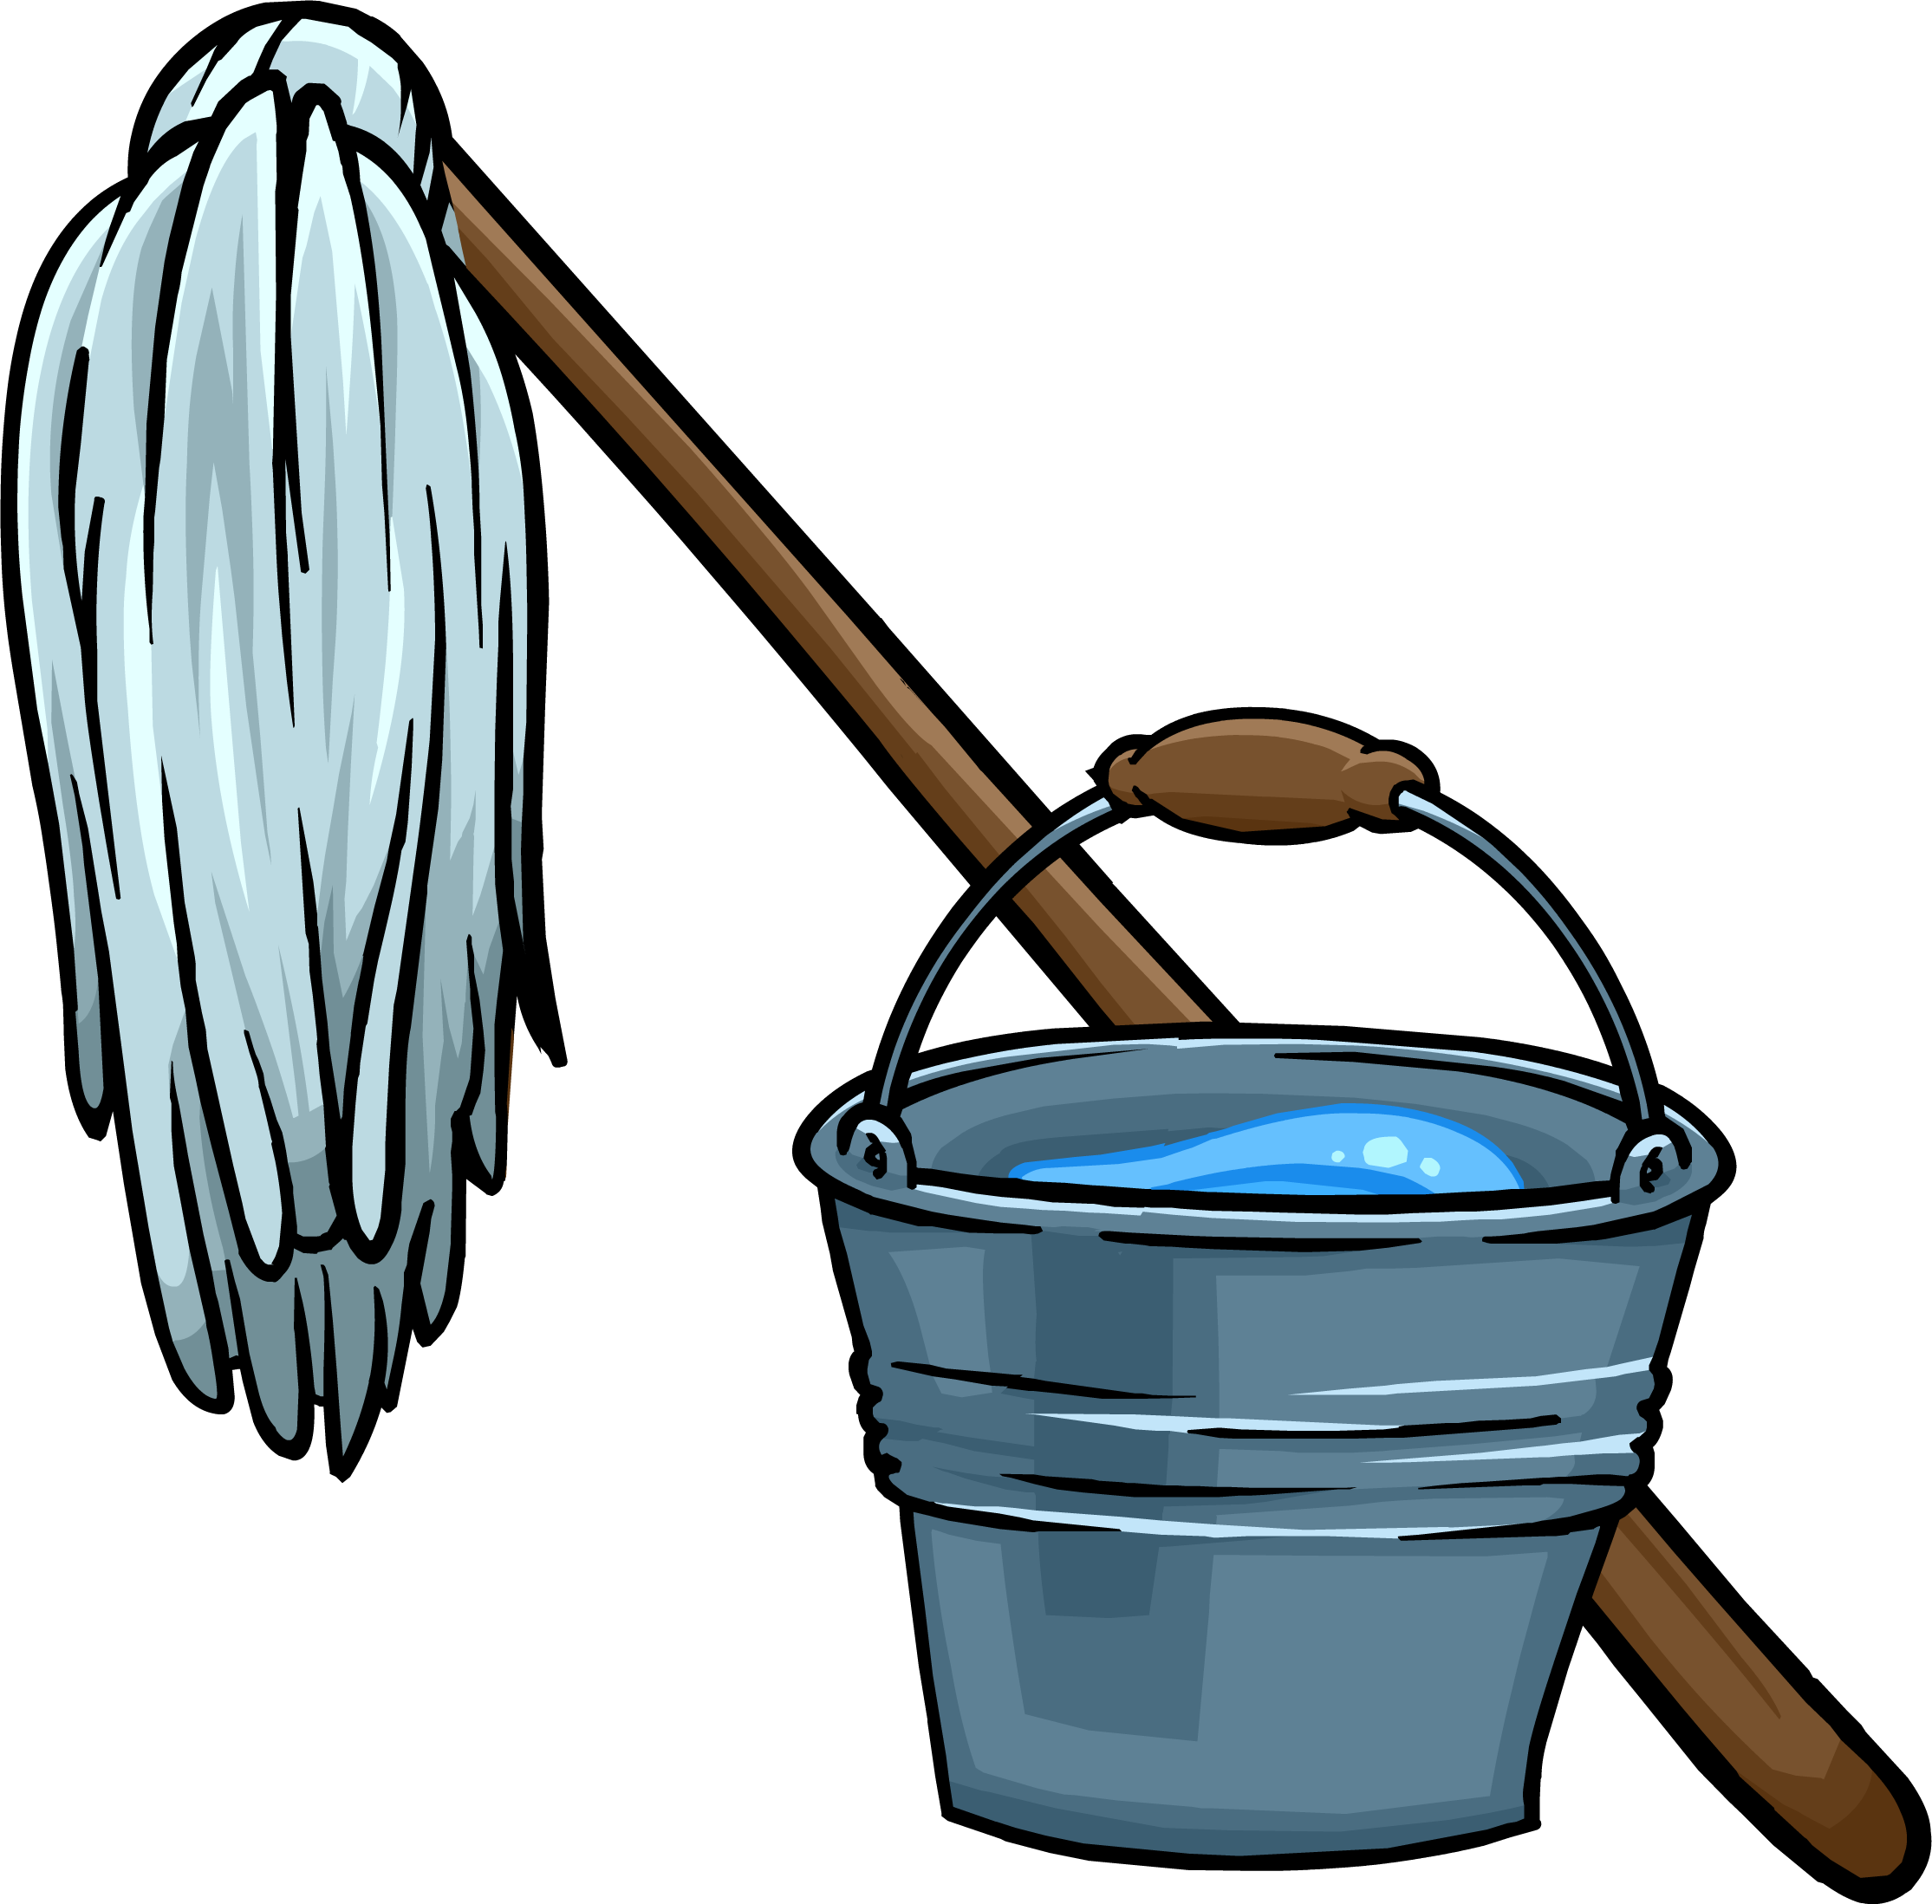 Bucket clipart balde. Mop and club penguin